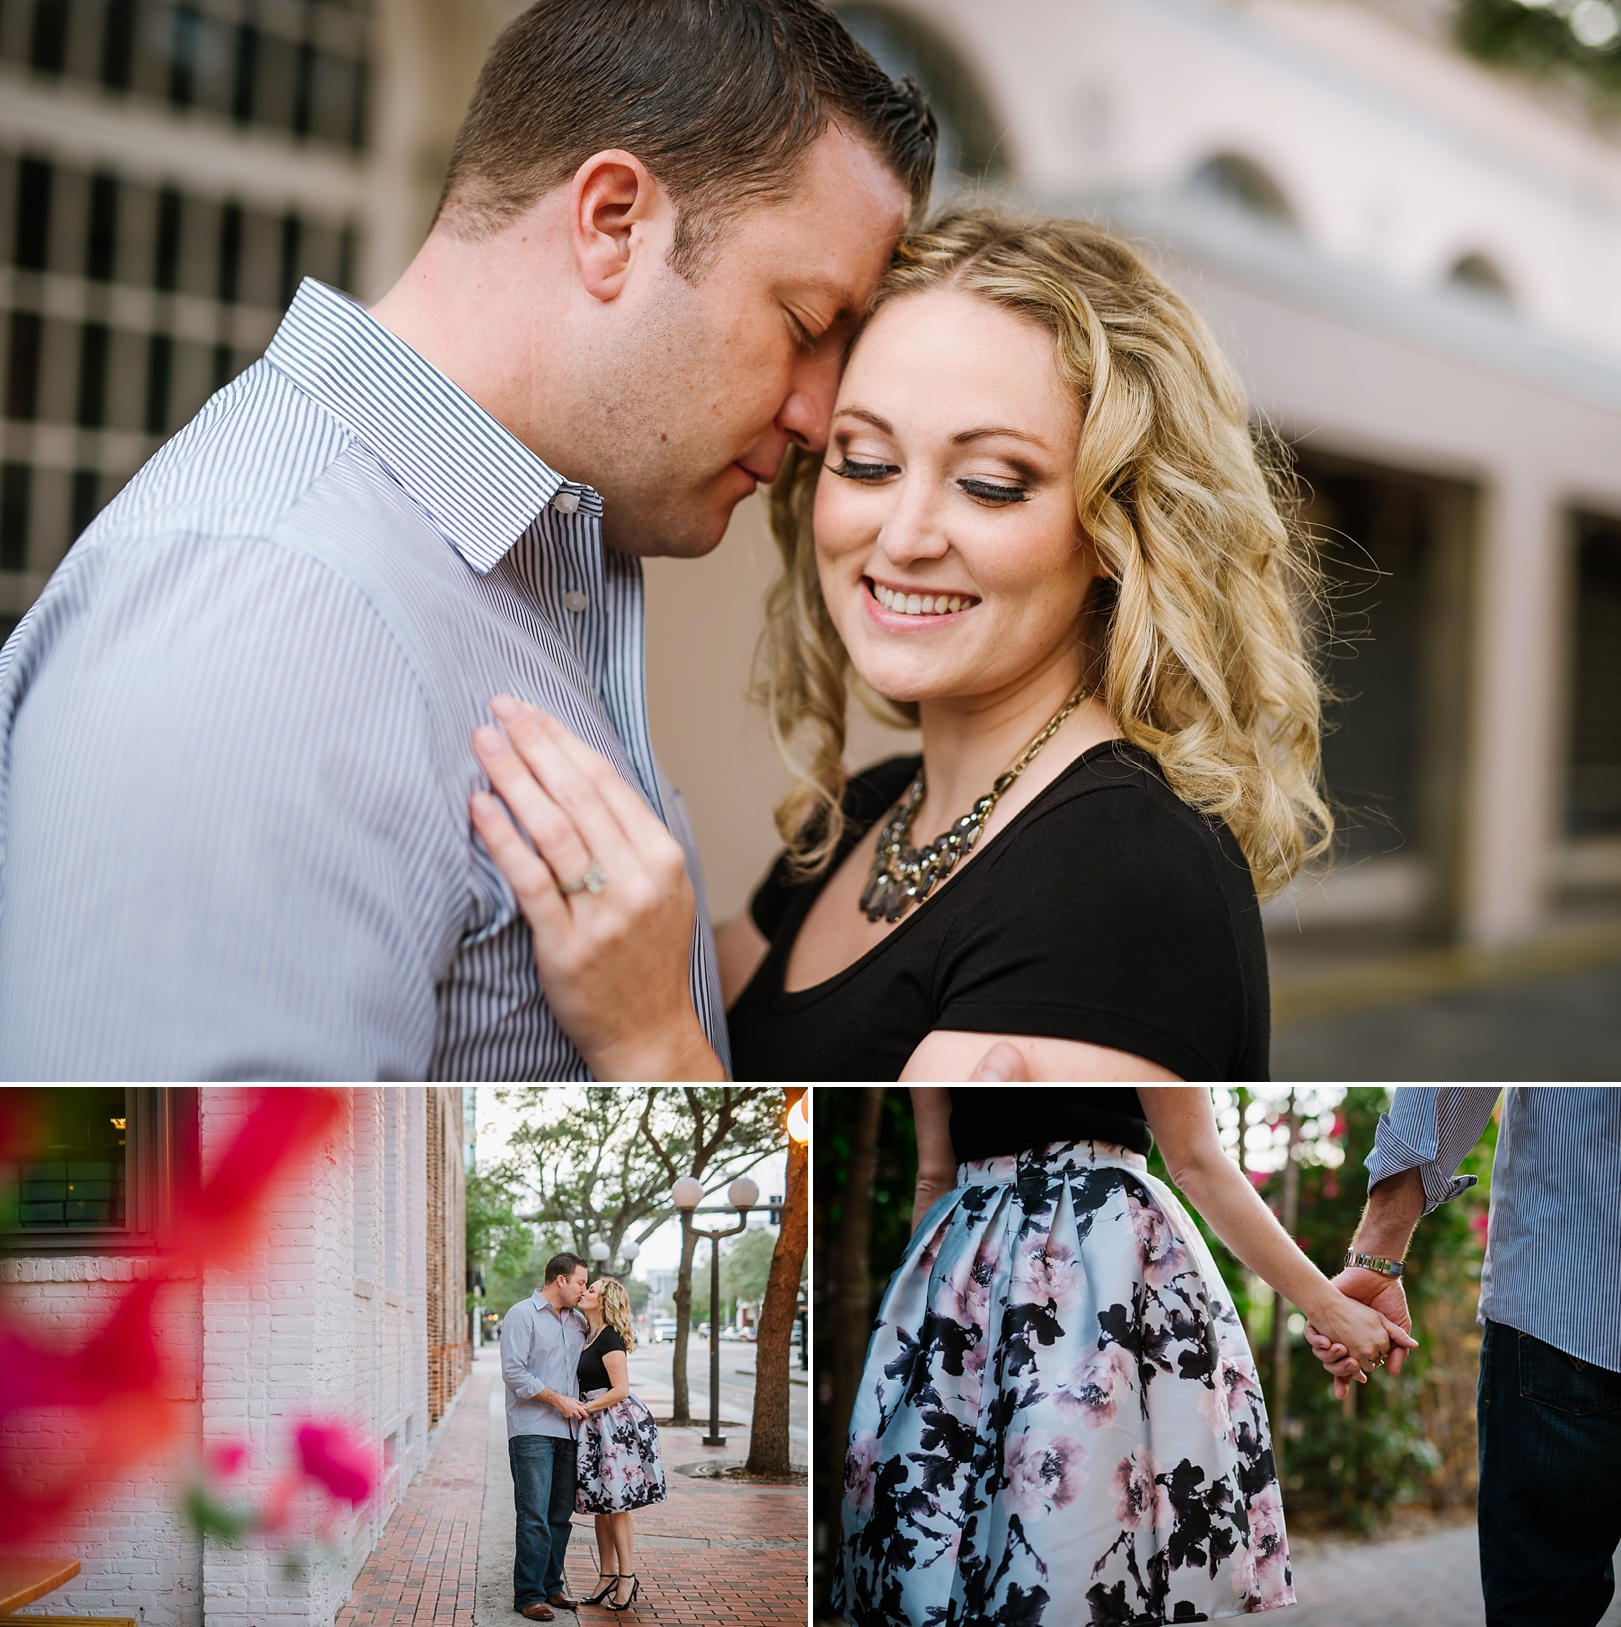 Stylish Engagement Photography